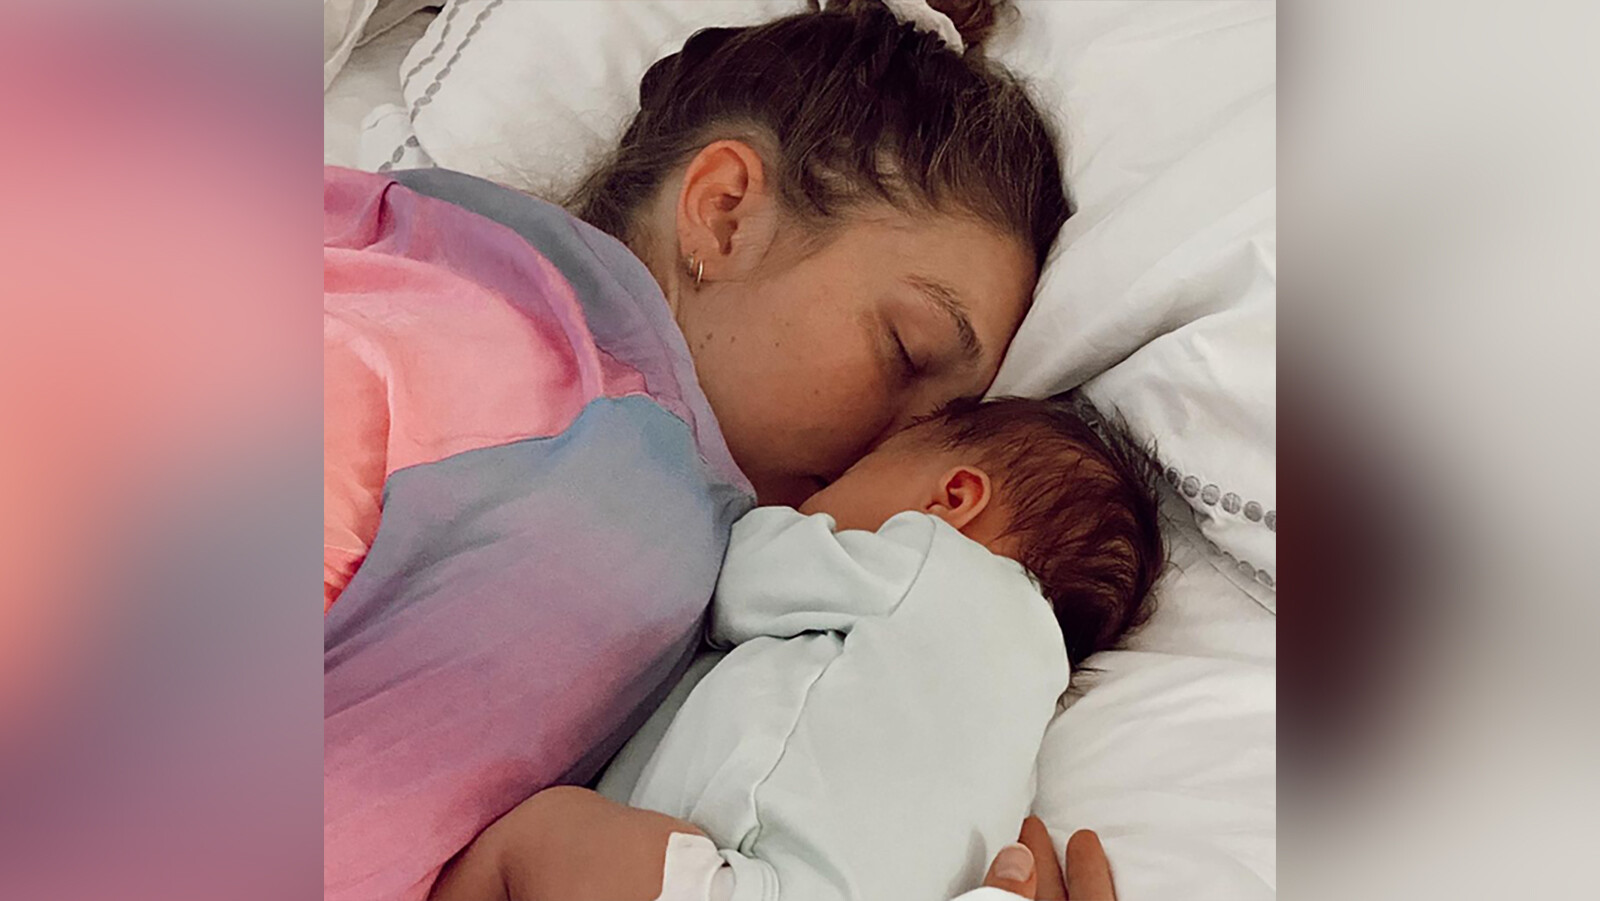 Gigi Hadid writes open letter explaining why she doesn't want her daughter's face in media photos